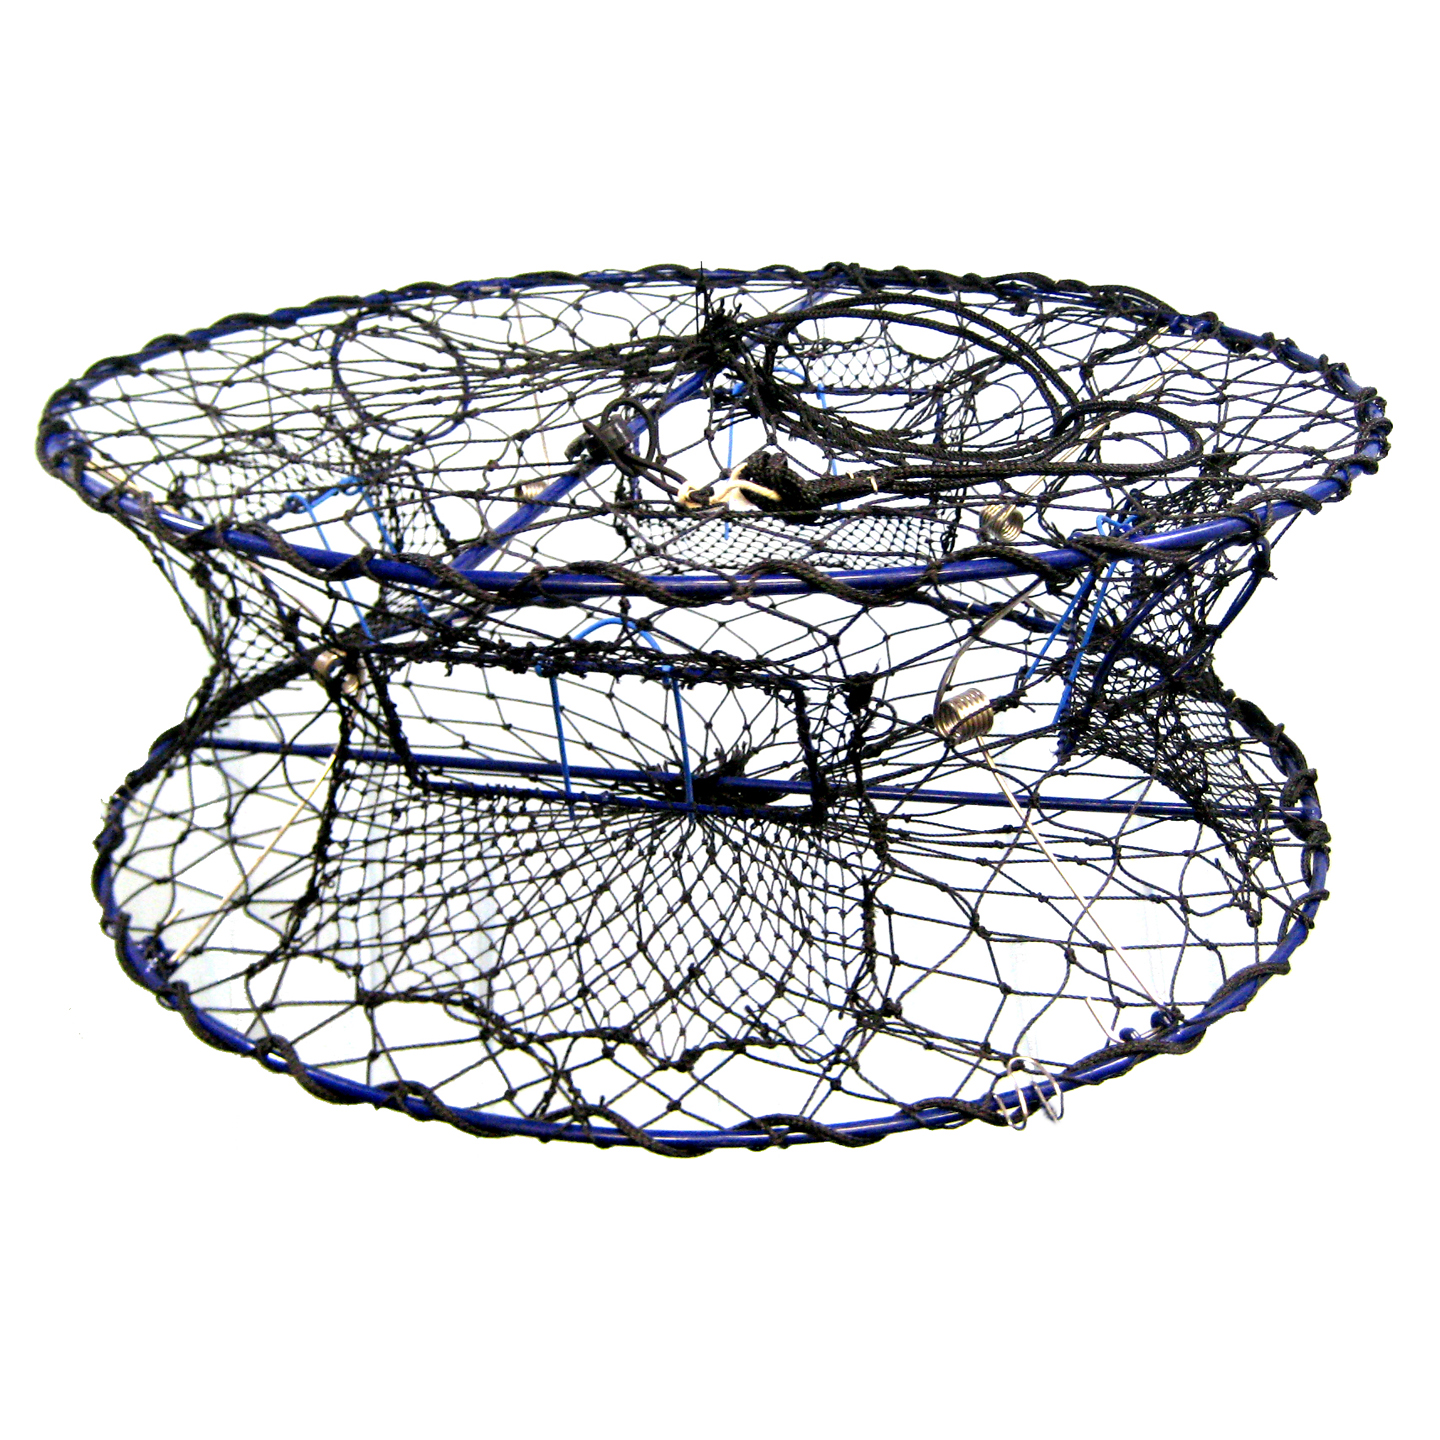 COLLAPSIBLE CRAB POTS.